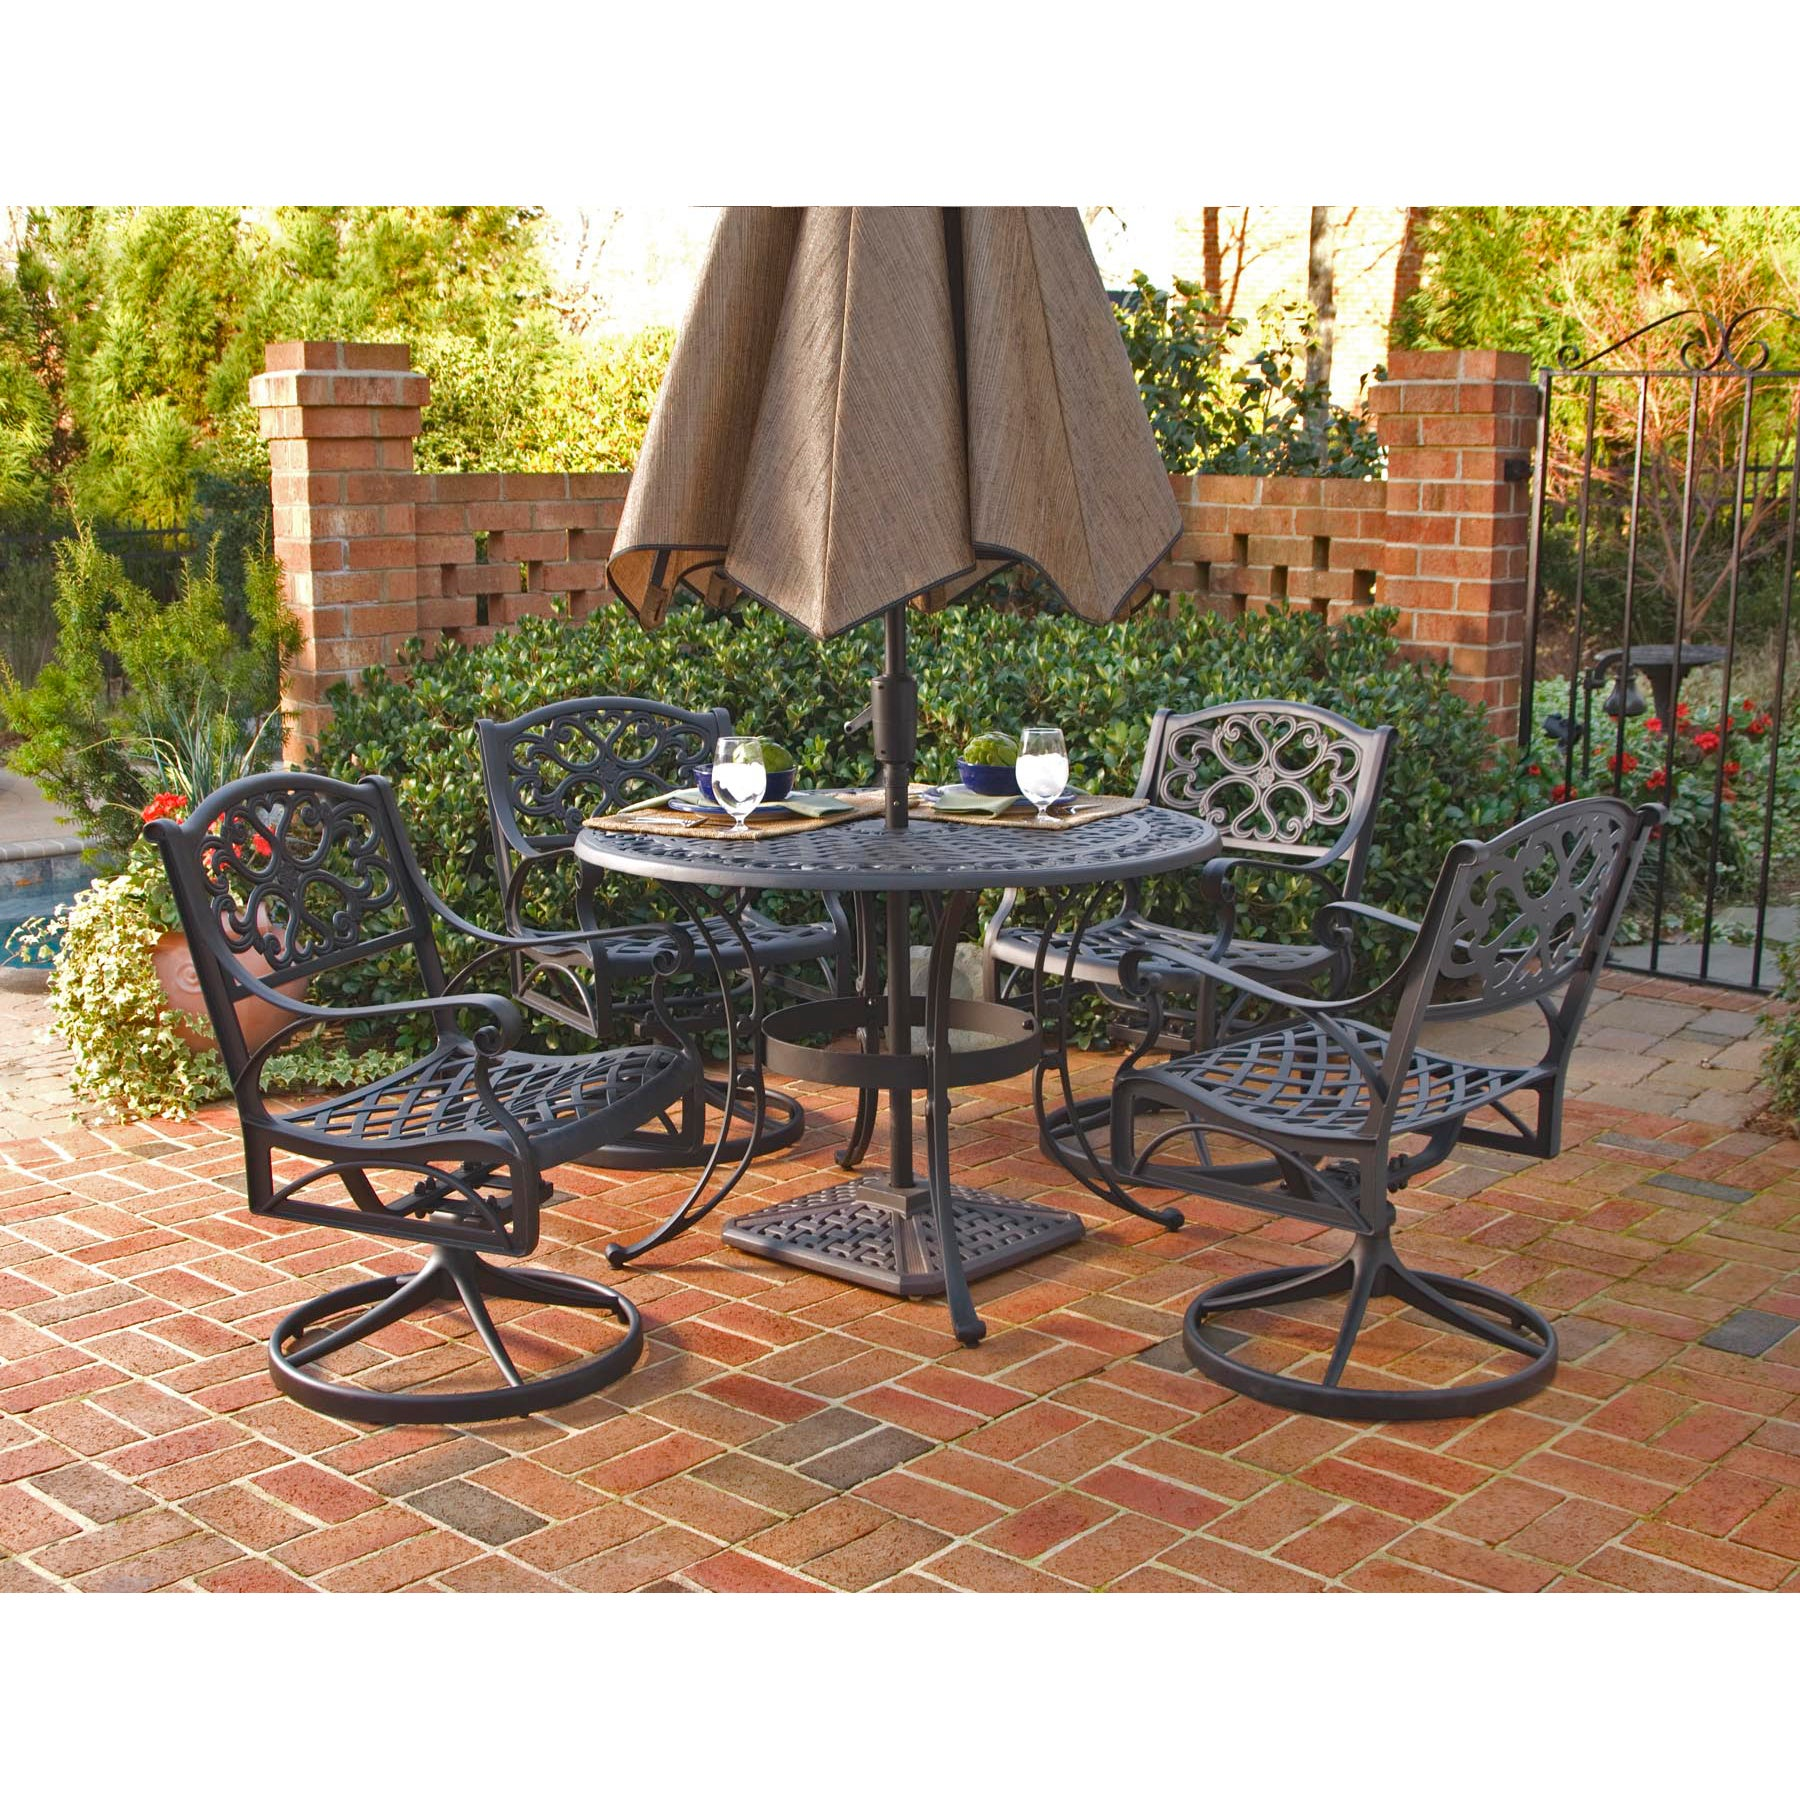 5 Piece Patio Dining Set By Home Styles